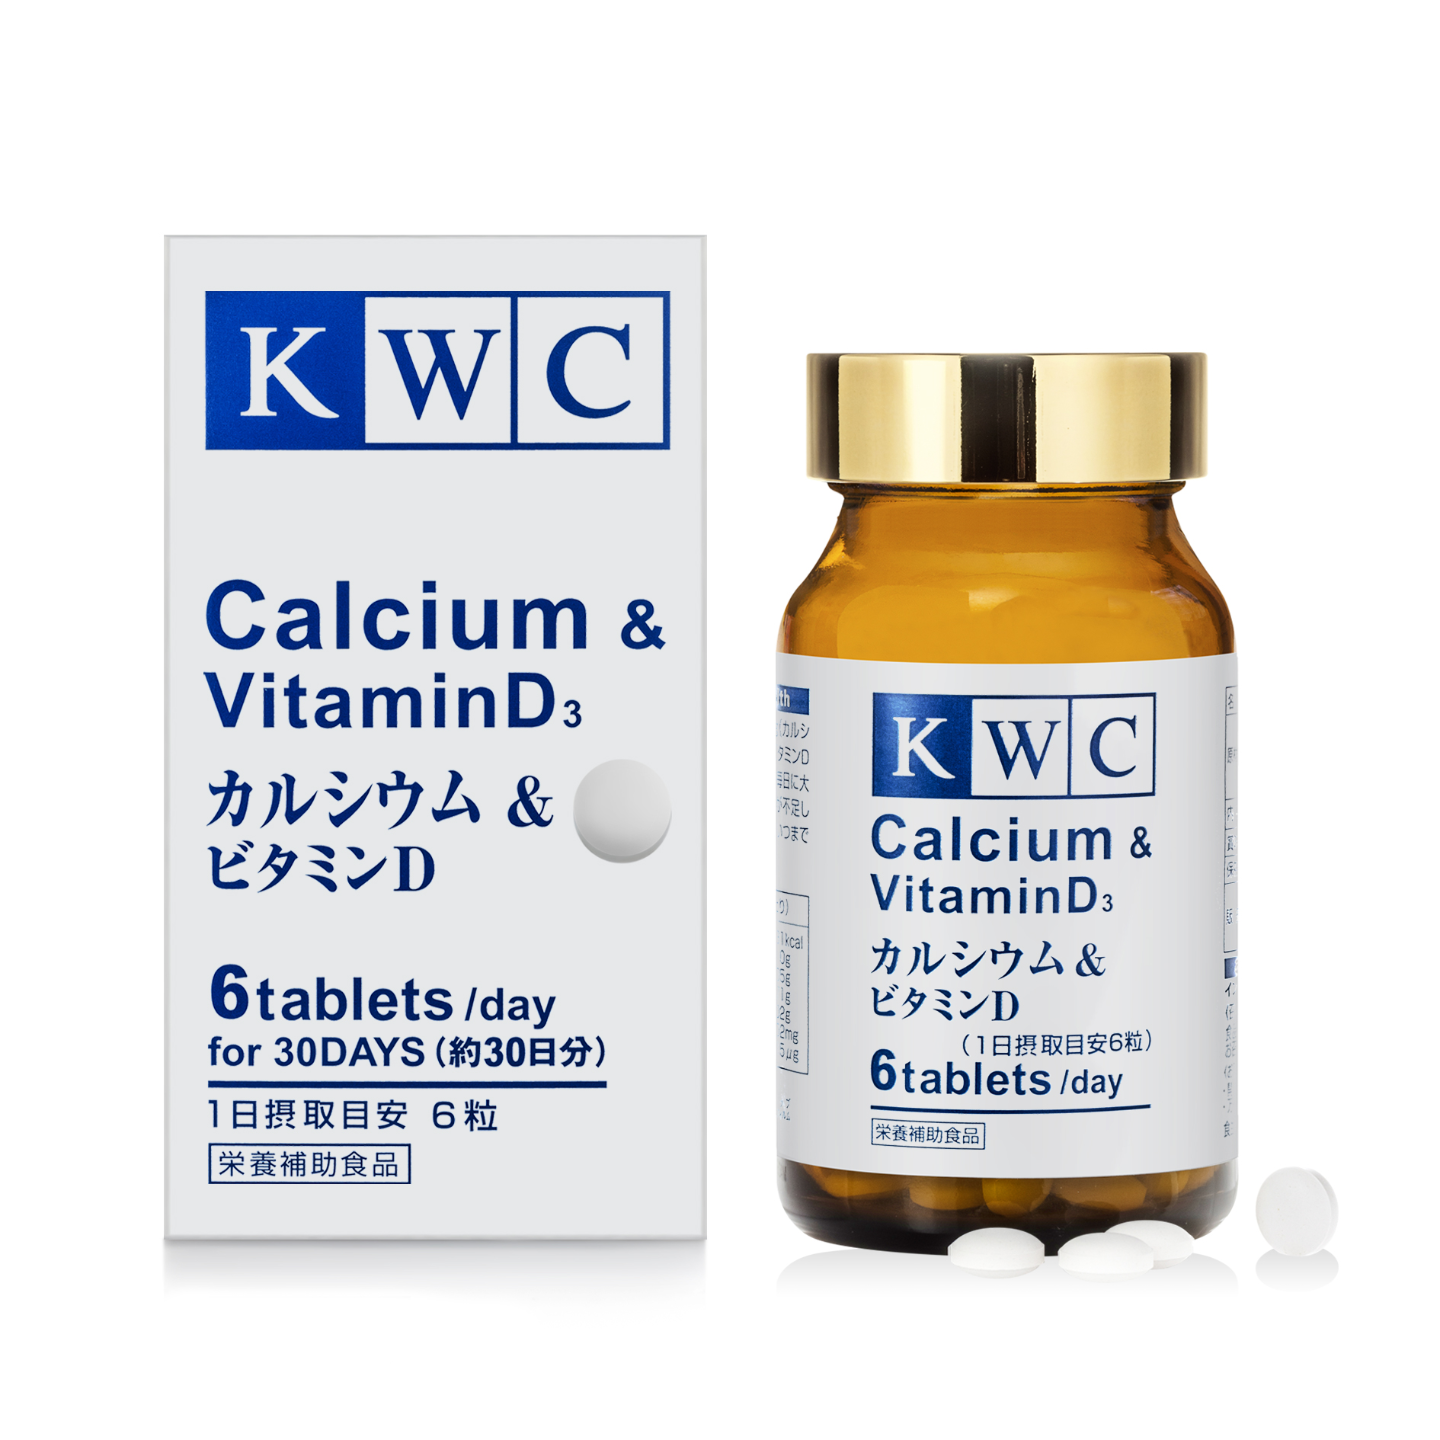 KWC Calcium & Vitamin D3 - 180 tablets